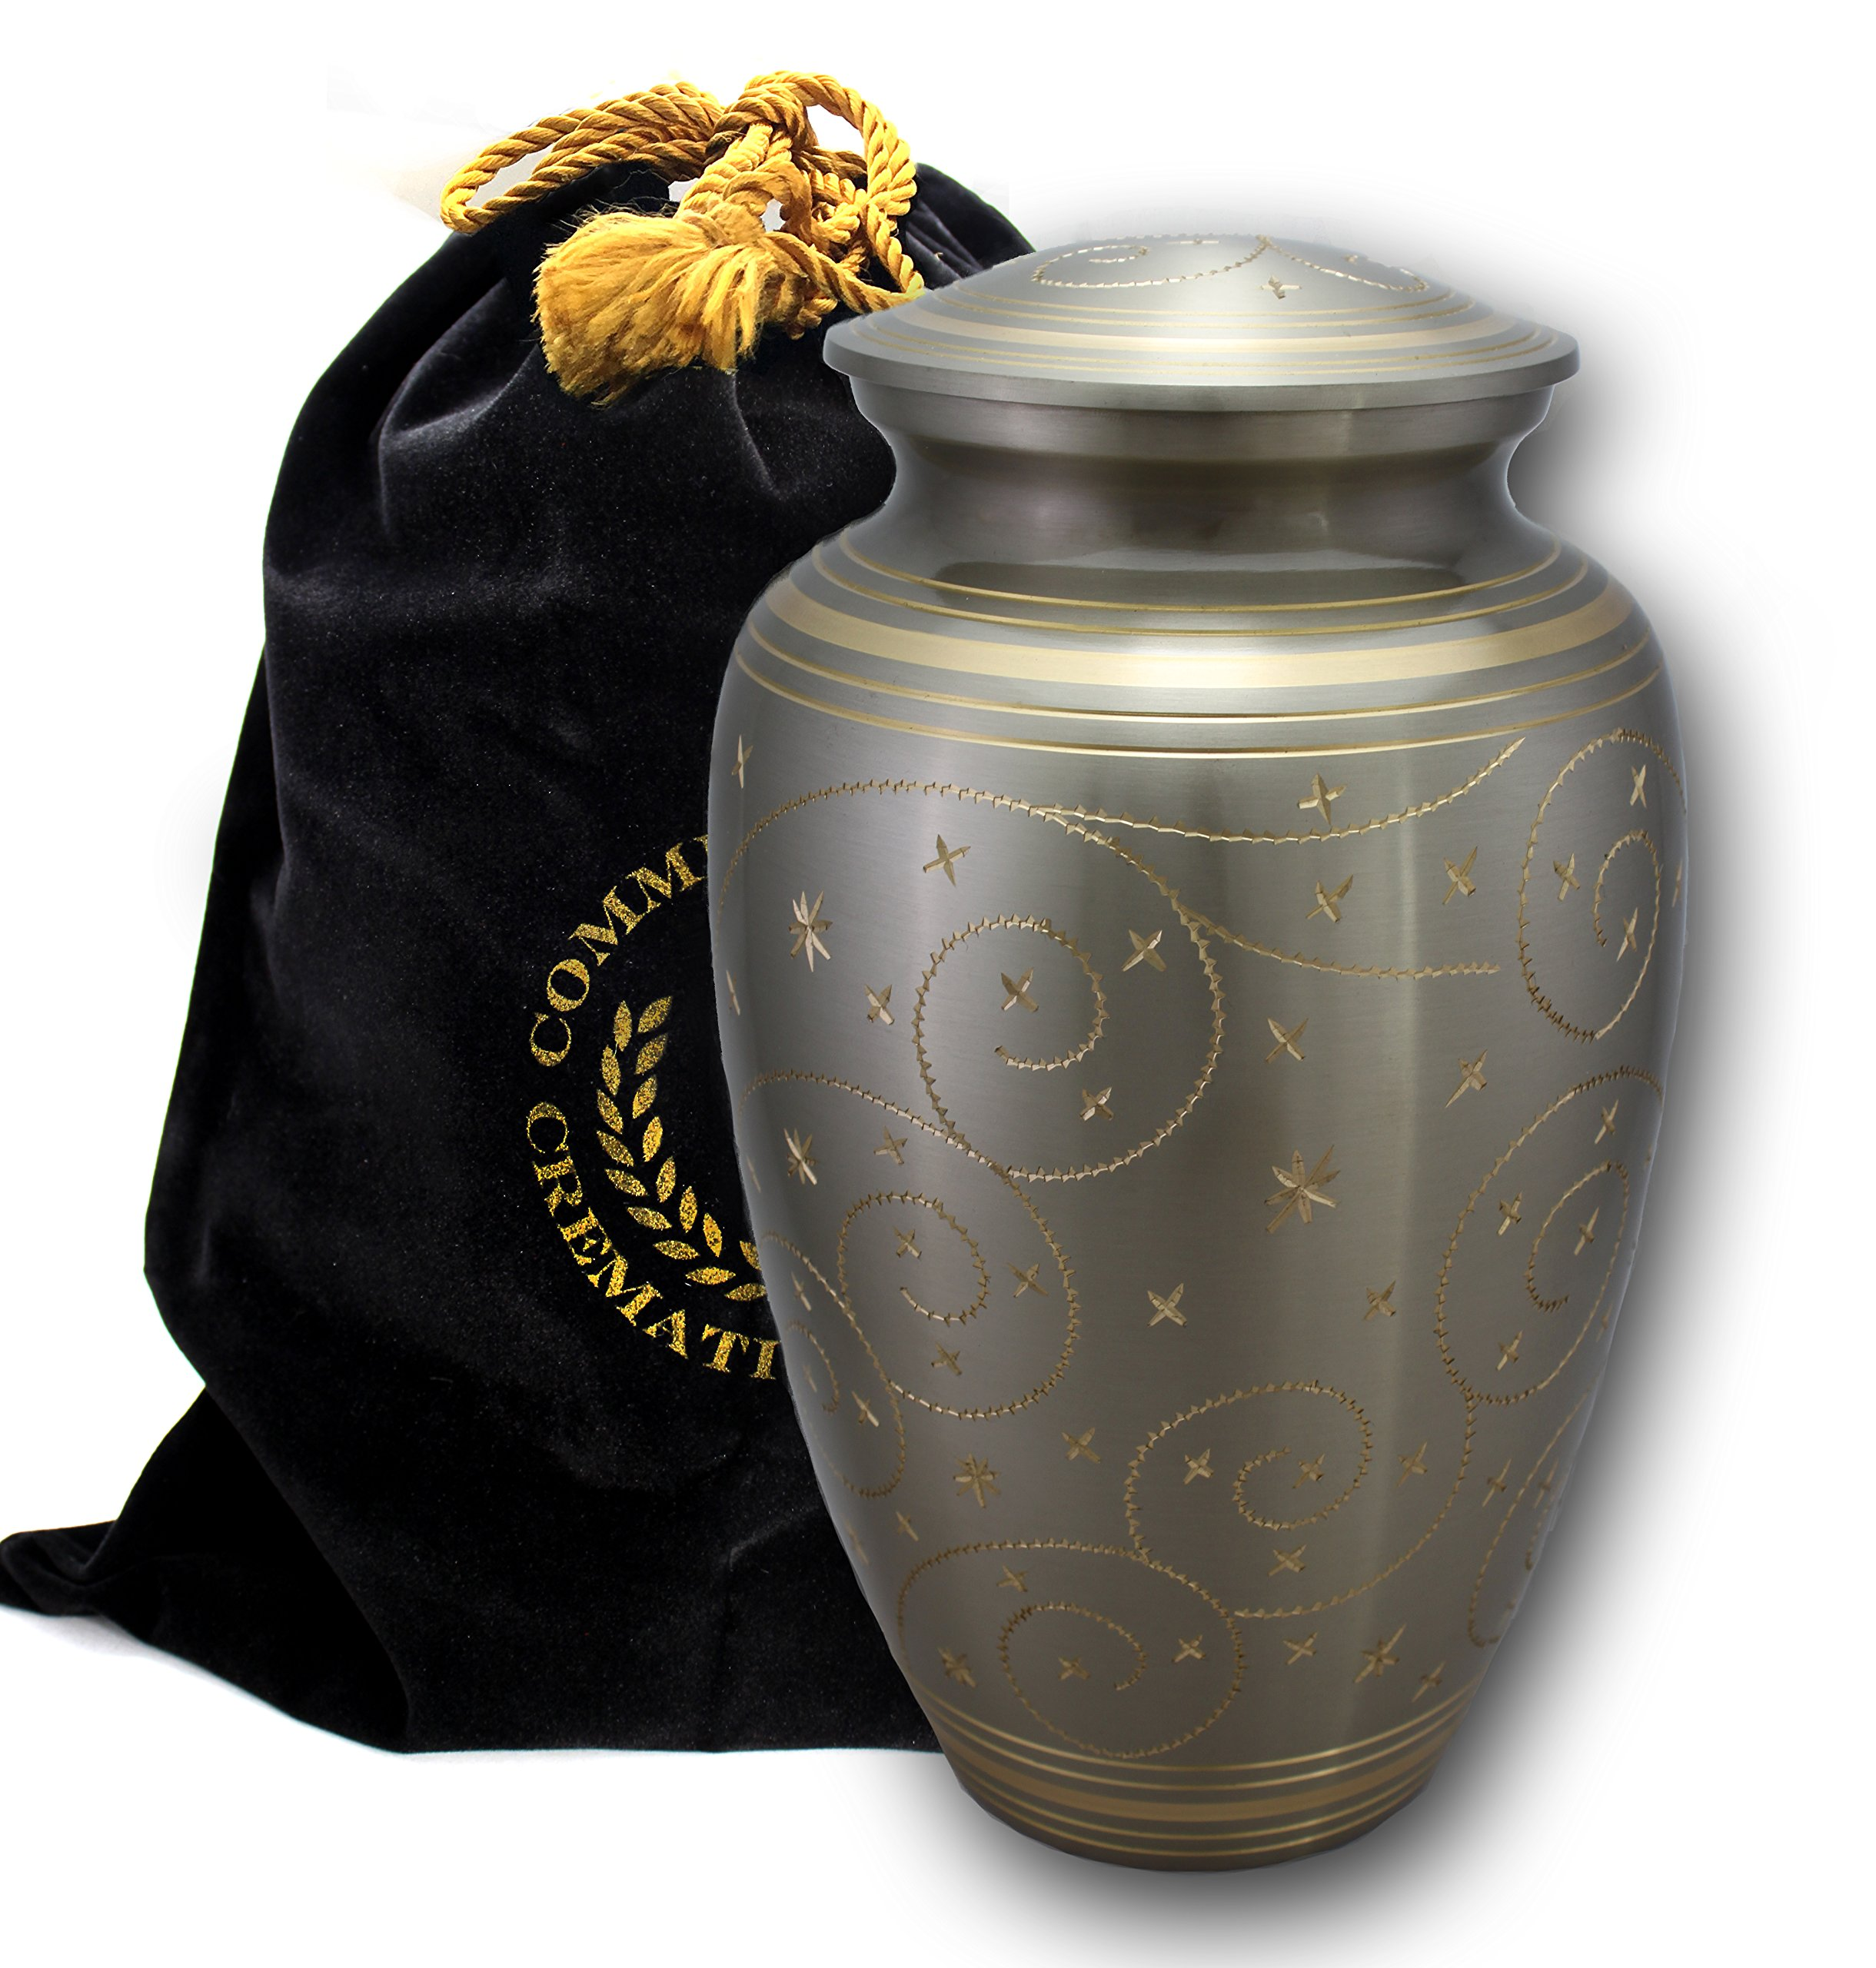 Star Light Brass Metal Funeral Cremation Urn for Human Ashes (Large) by Commemorative Cremation Urns (Image #3)